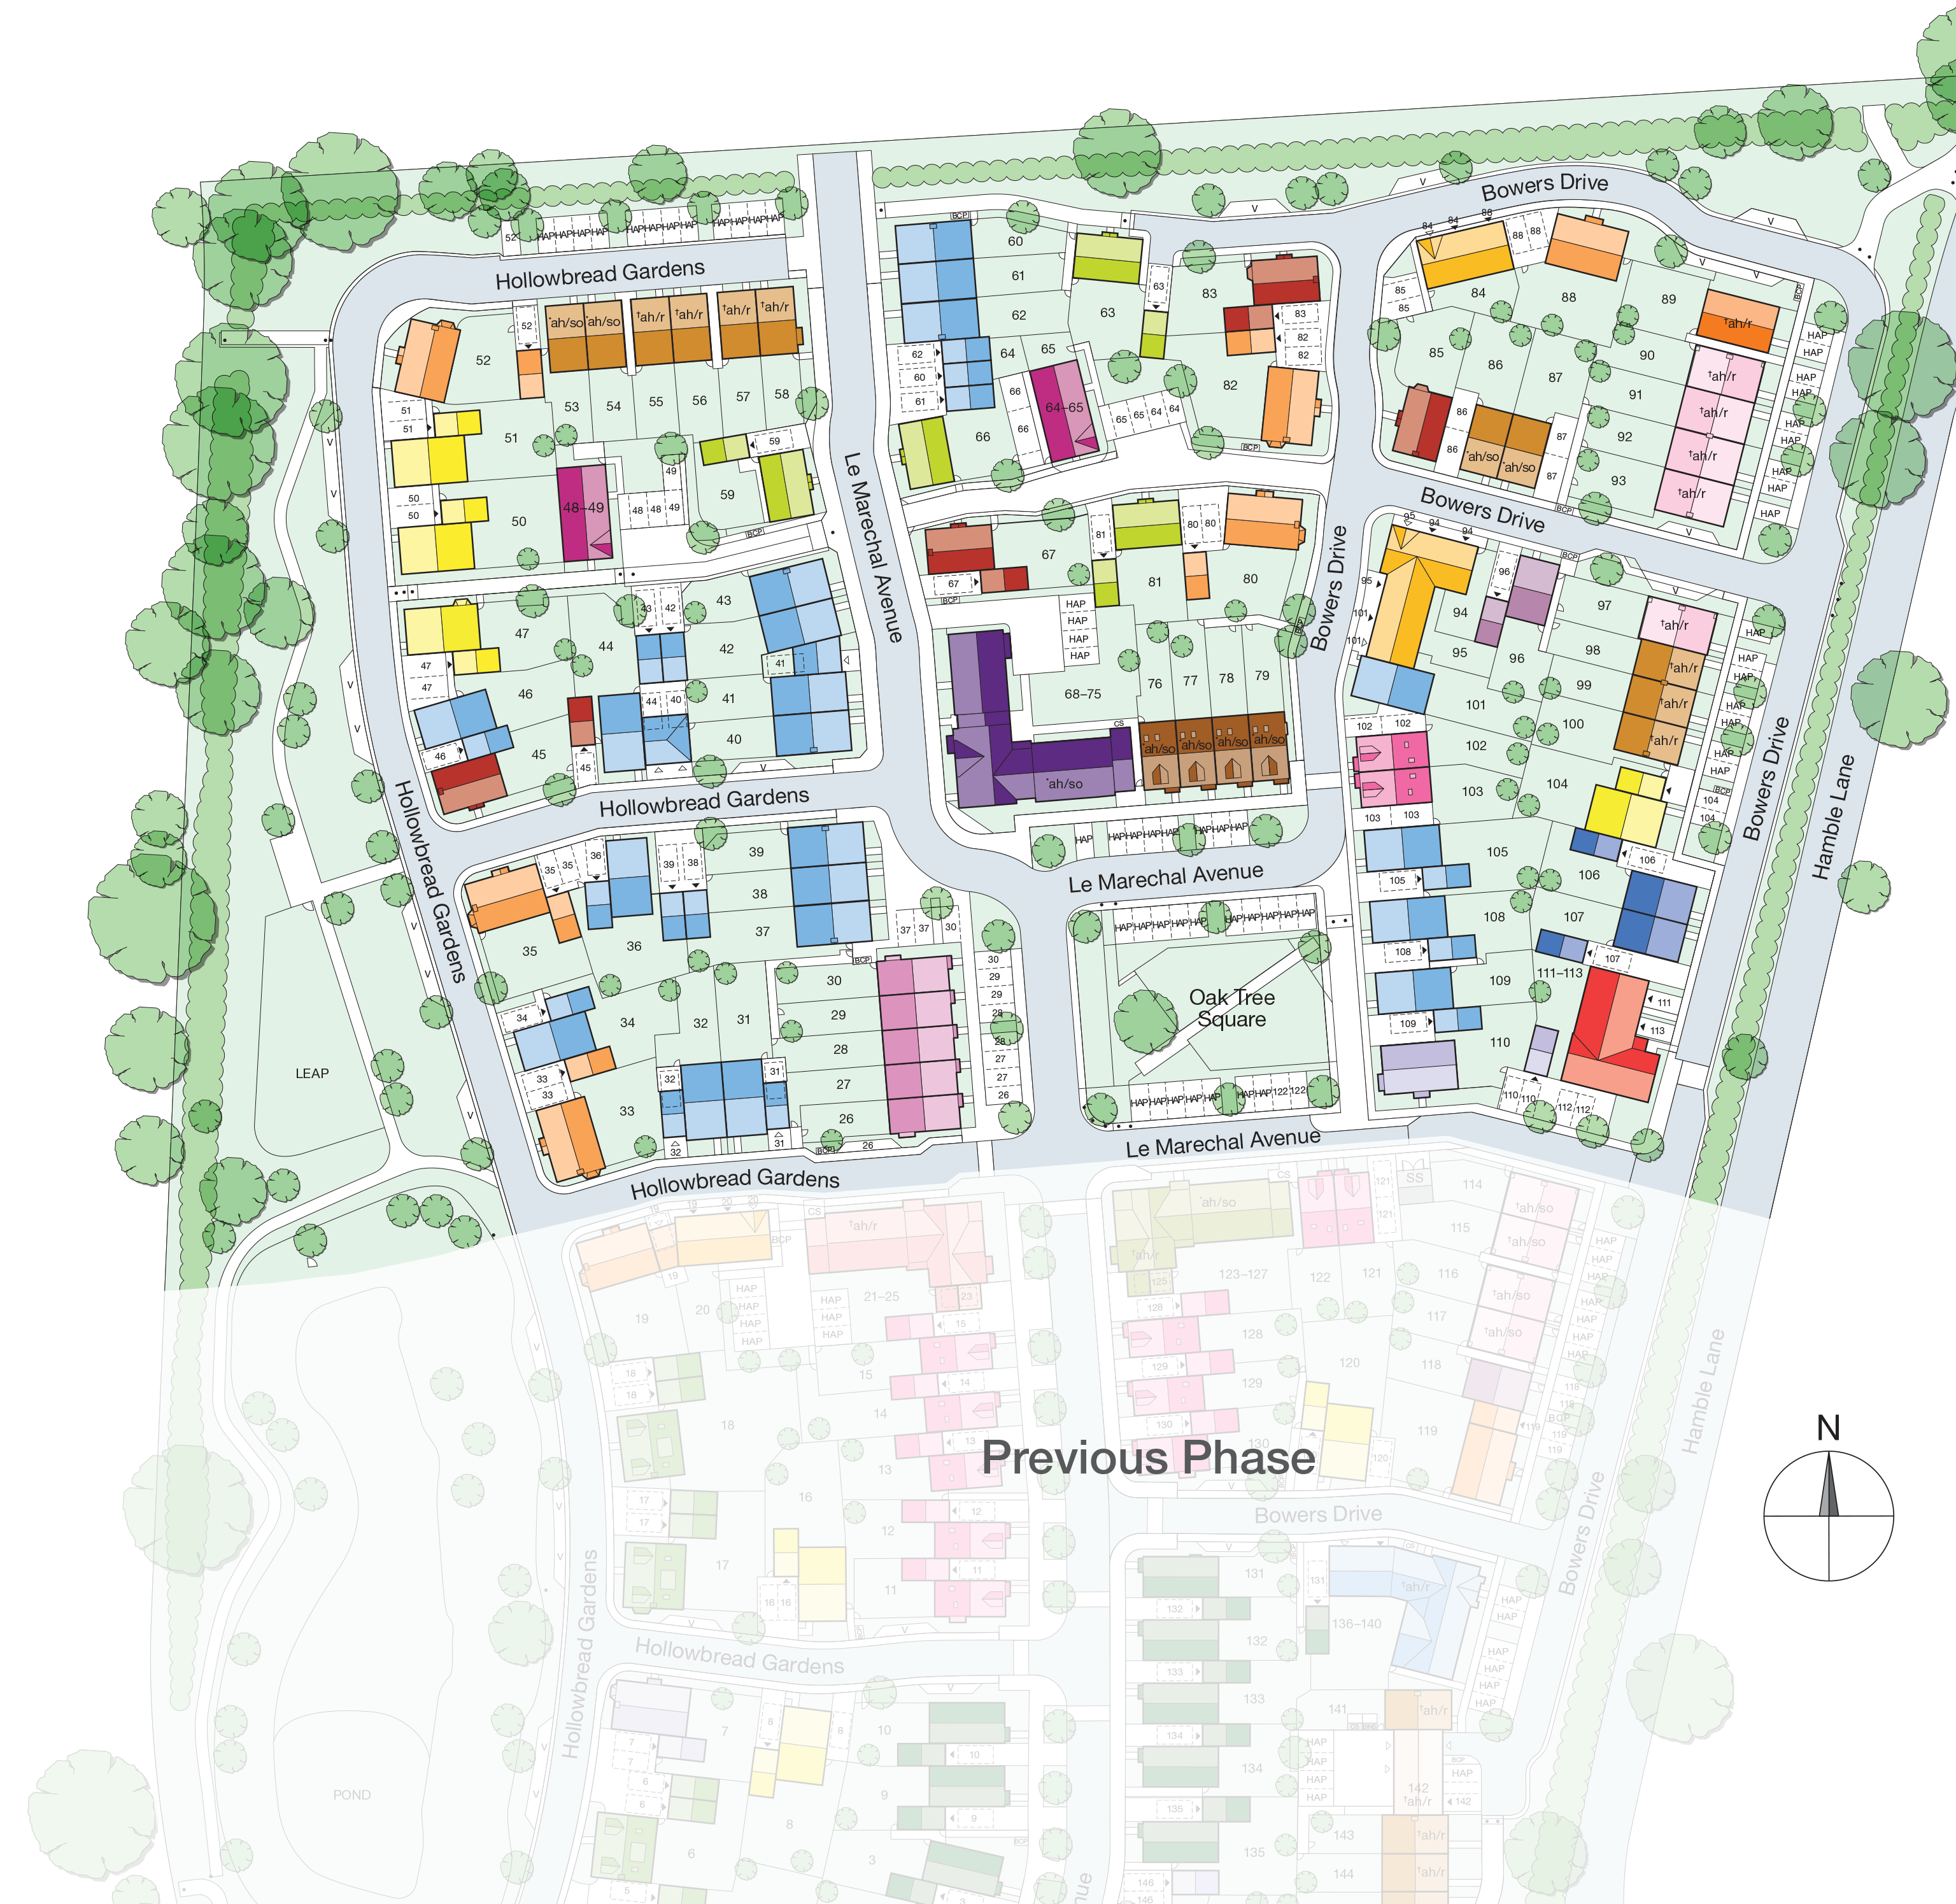 Kingfisher-Grange-Siteplan_Phase 2